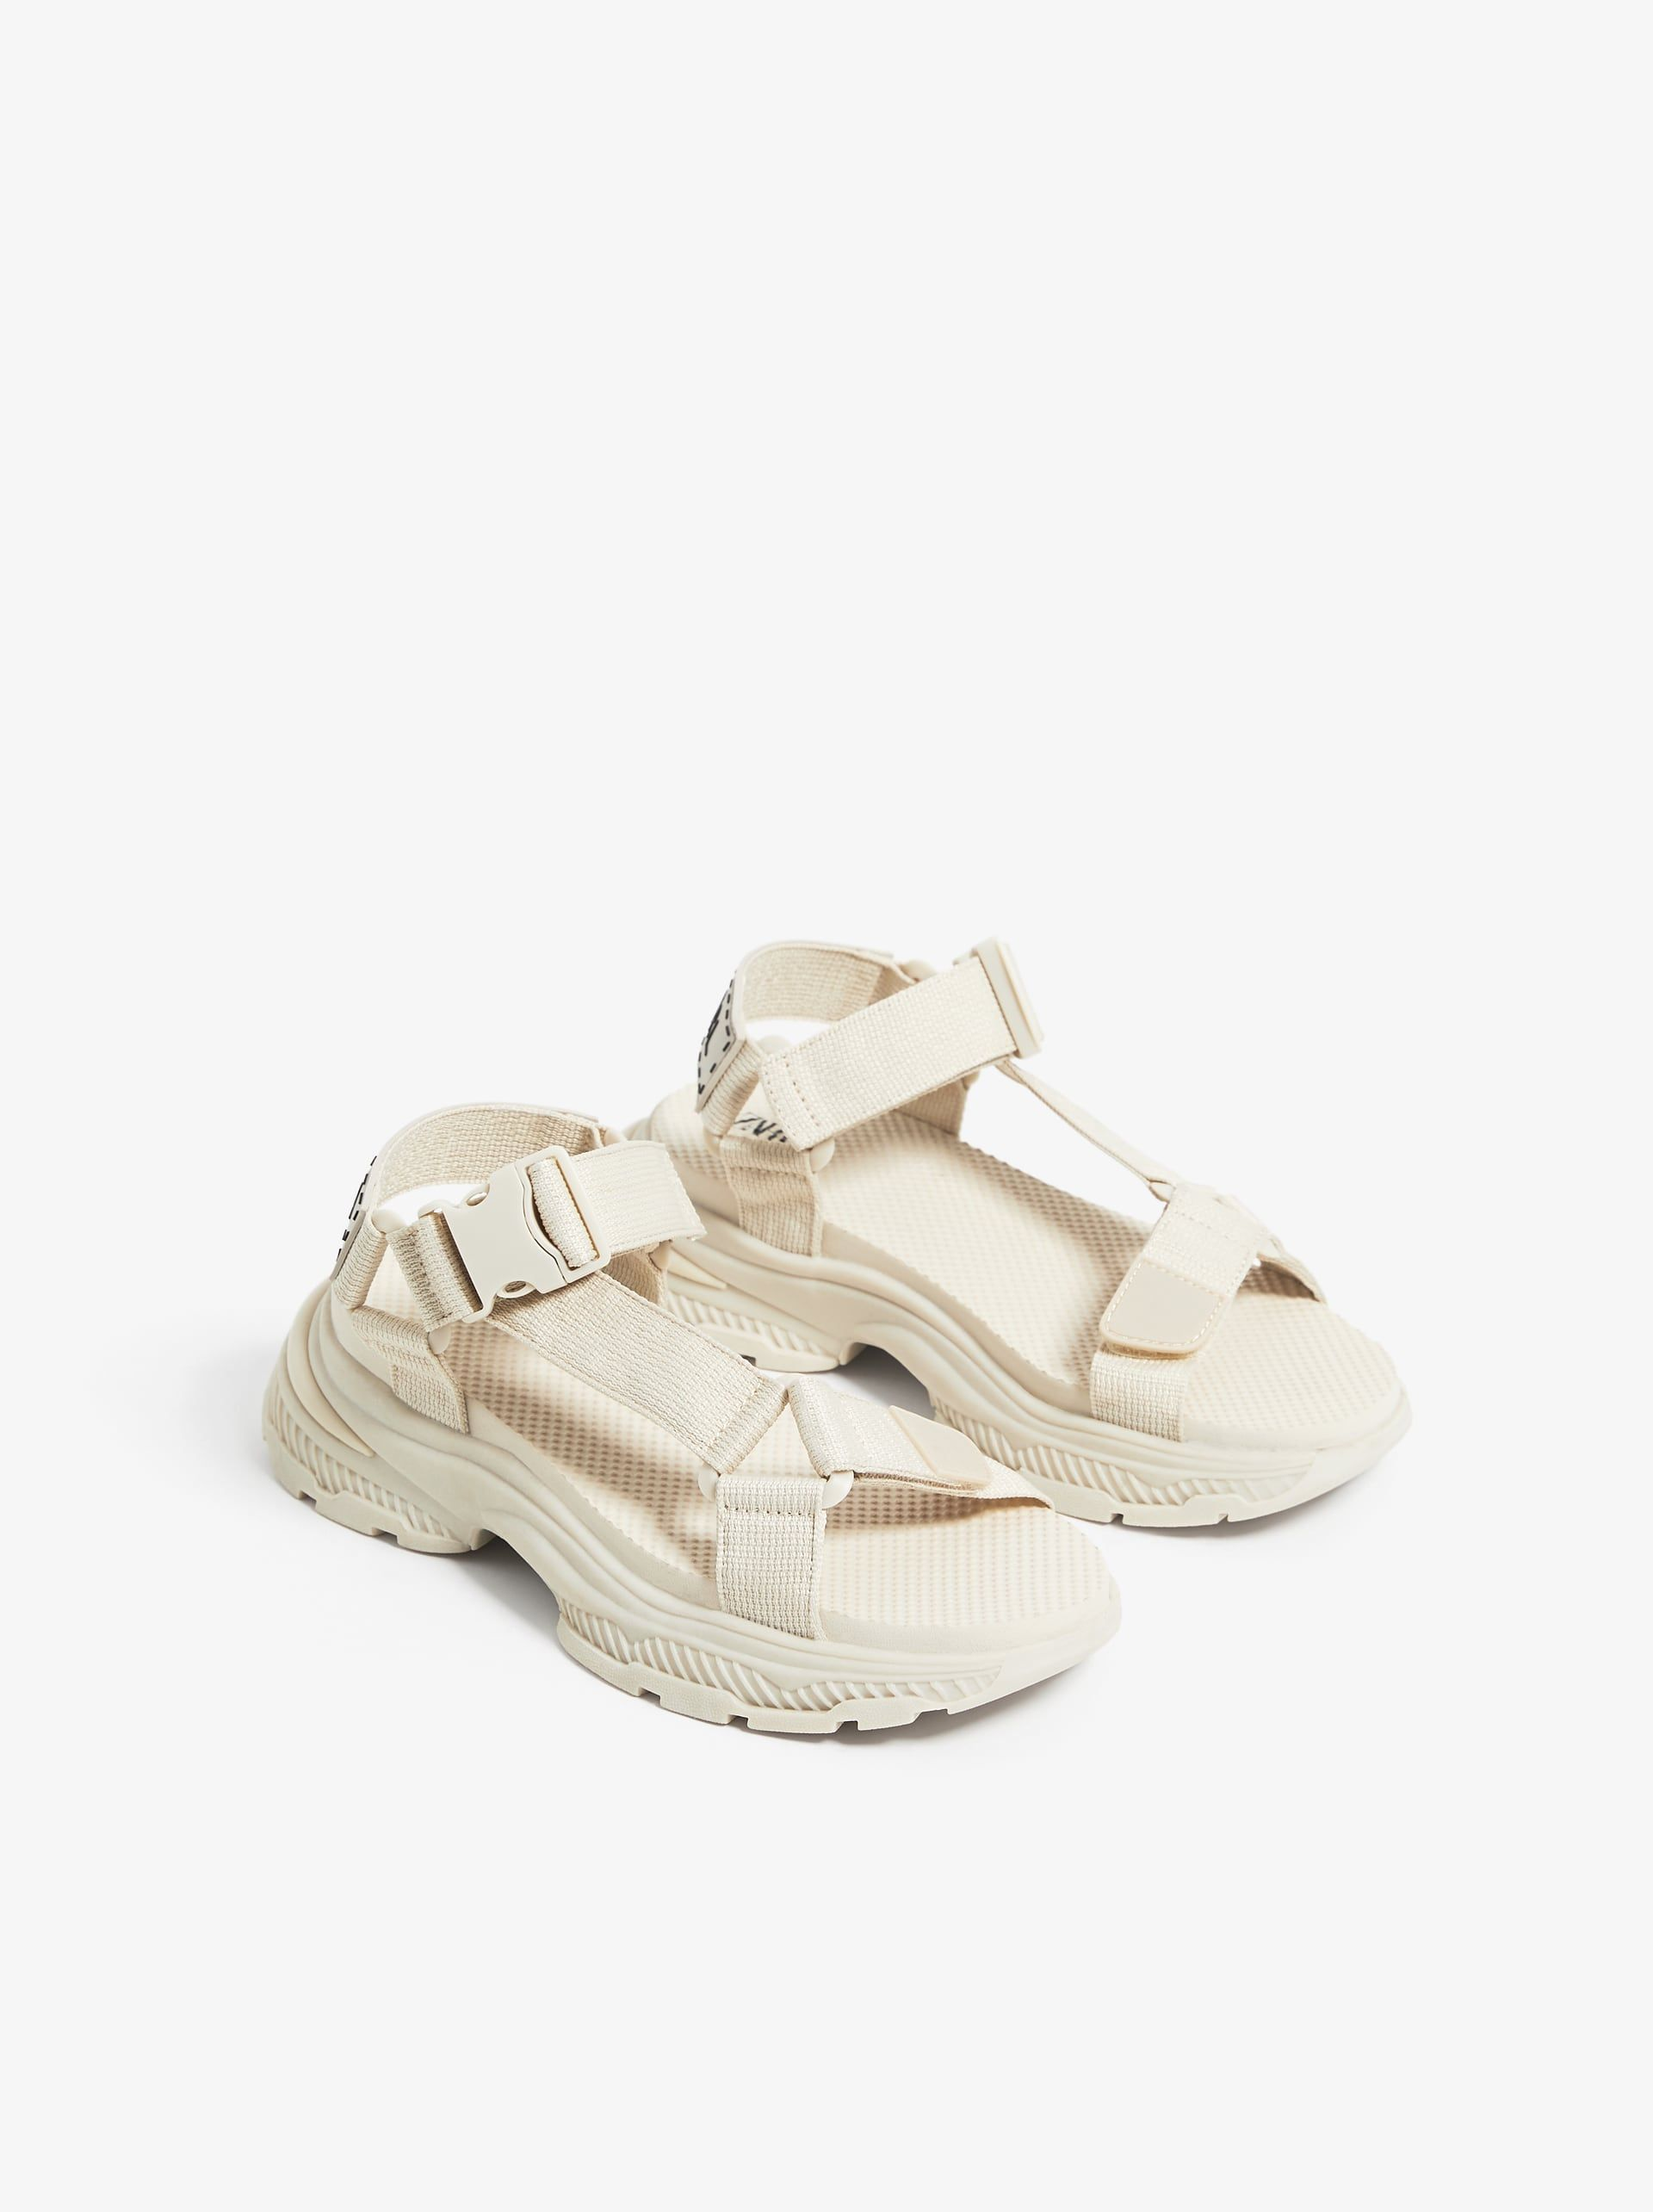 Technical Sandals View All Shoes Girl 5 14 Yrs Kids Zara United Kingdom Sandals Girls Shoes Girls Sandals